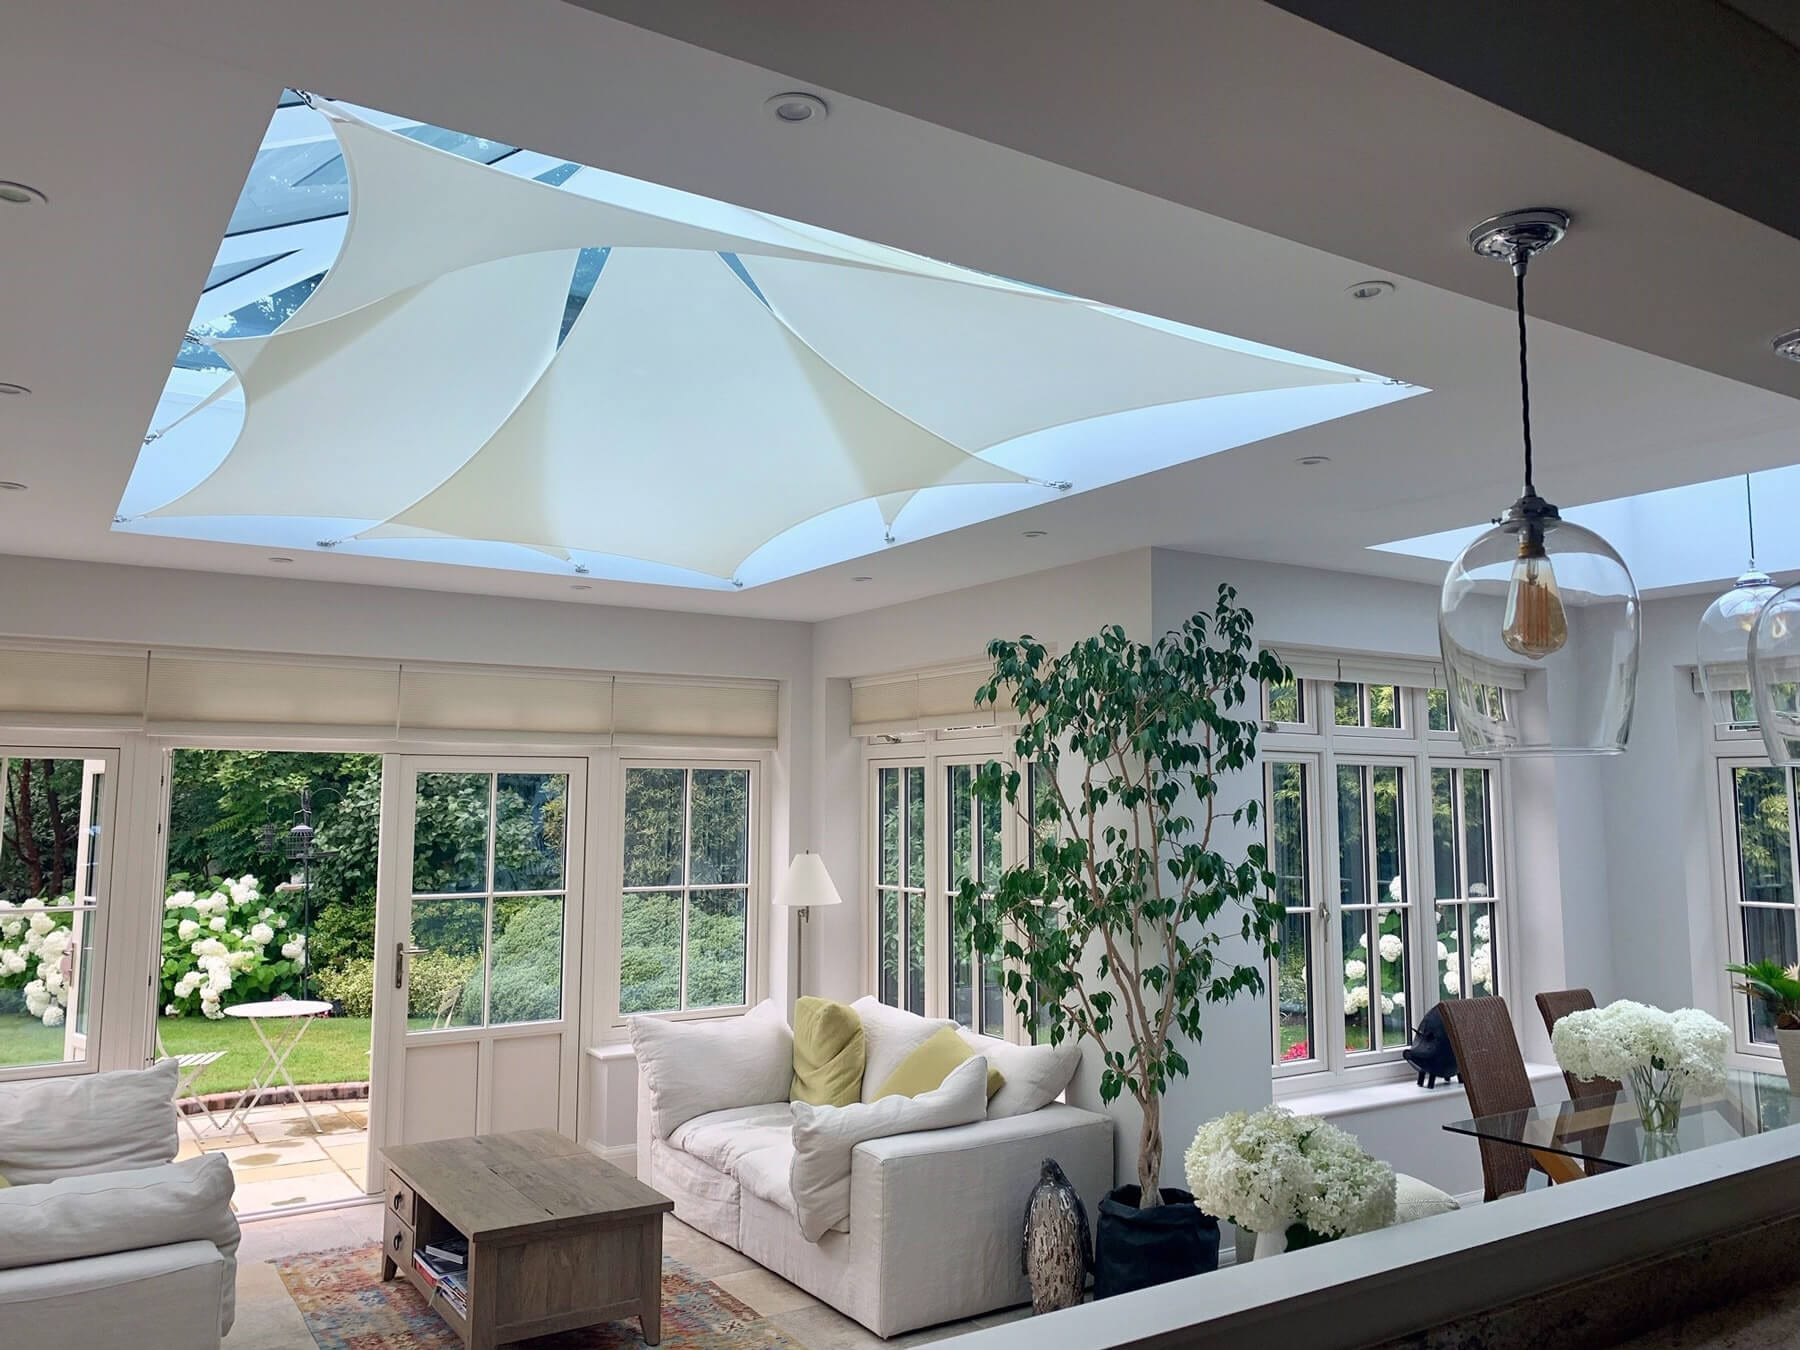 InShade sail blinds - elegant roof blinds that allow more natural light